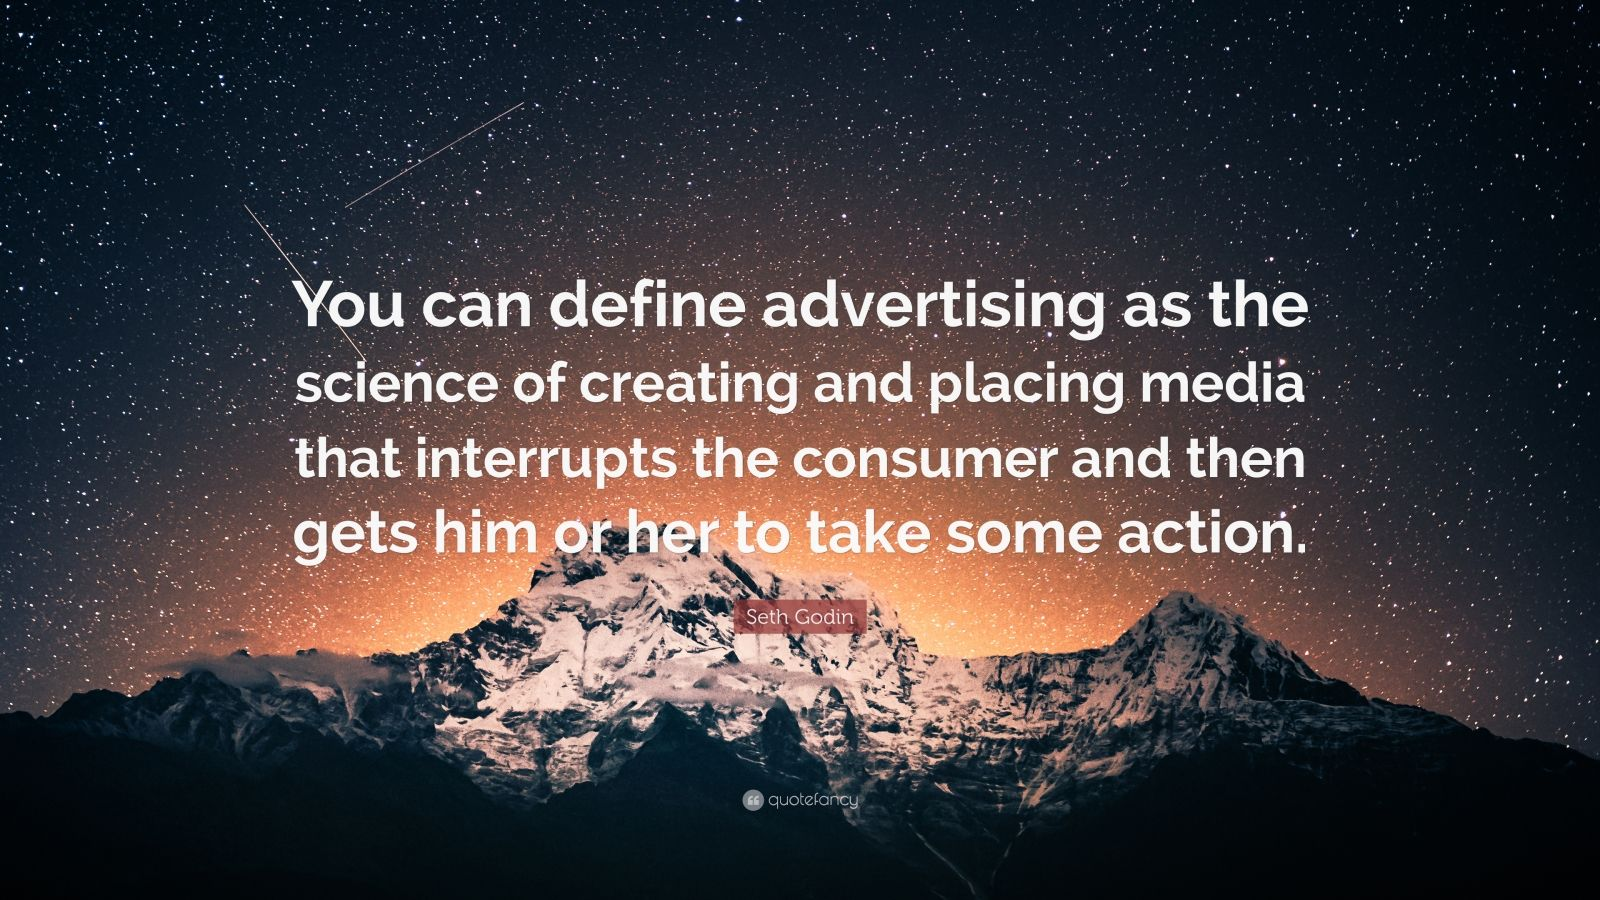 """Seth Godin Quote: """"You can define advertising as the science of creating and placing media that interrupts the consumer and then gets him or her to take some action."""""""